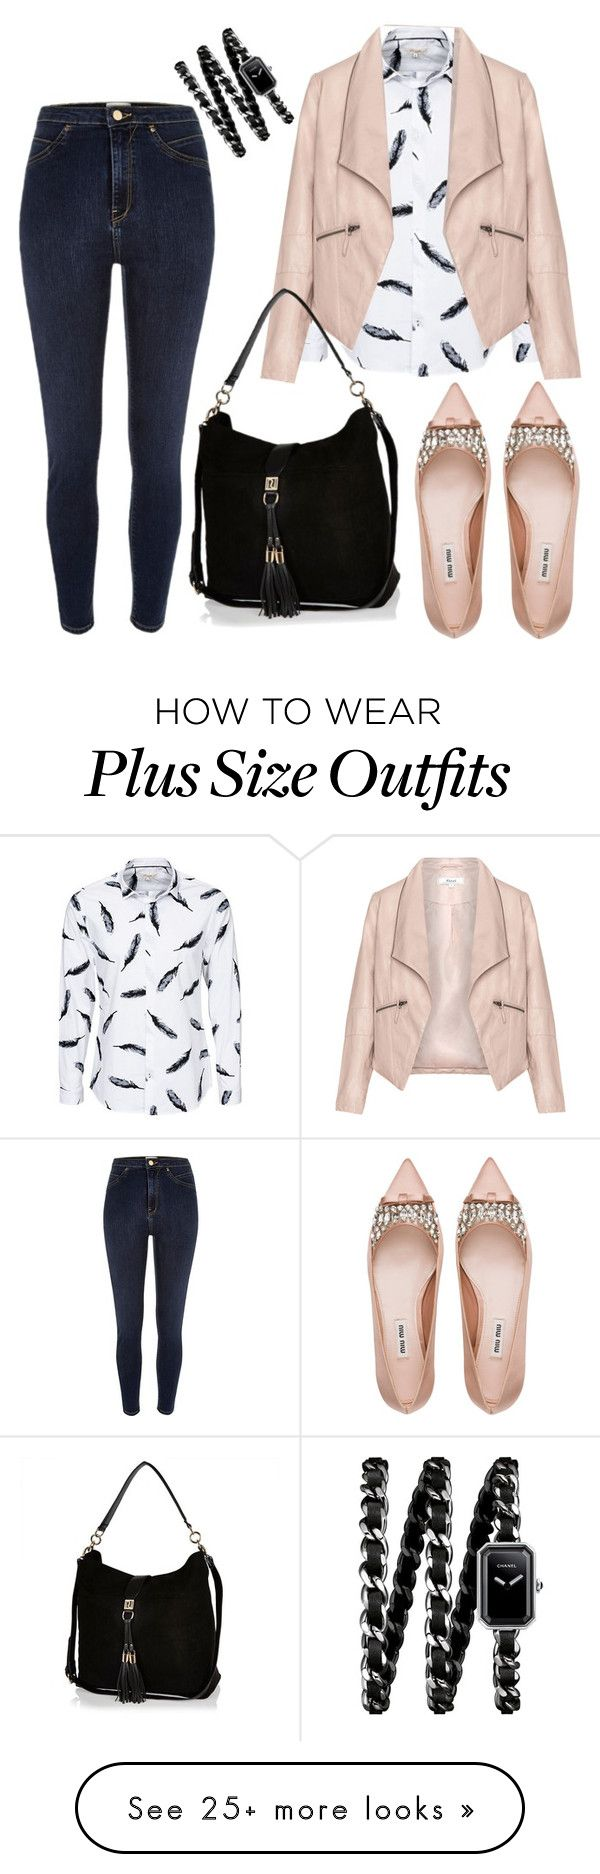 """""""Untitled #1053"""" by rocio-martinez-1 on Polyvore featuring River Island, Zizzi, Miu Miu, Chanel, women's clothing, women, female, woman, misses and juniors"""